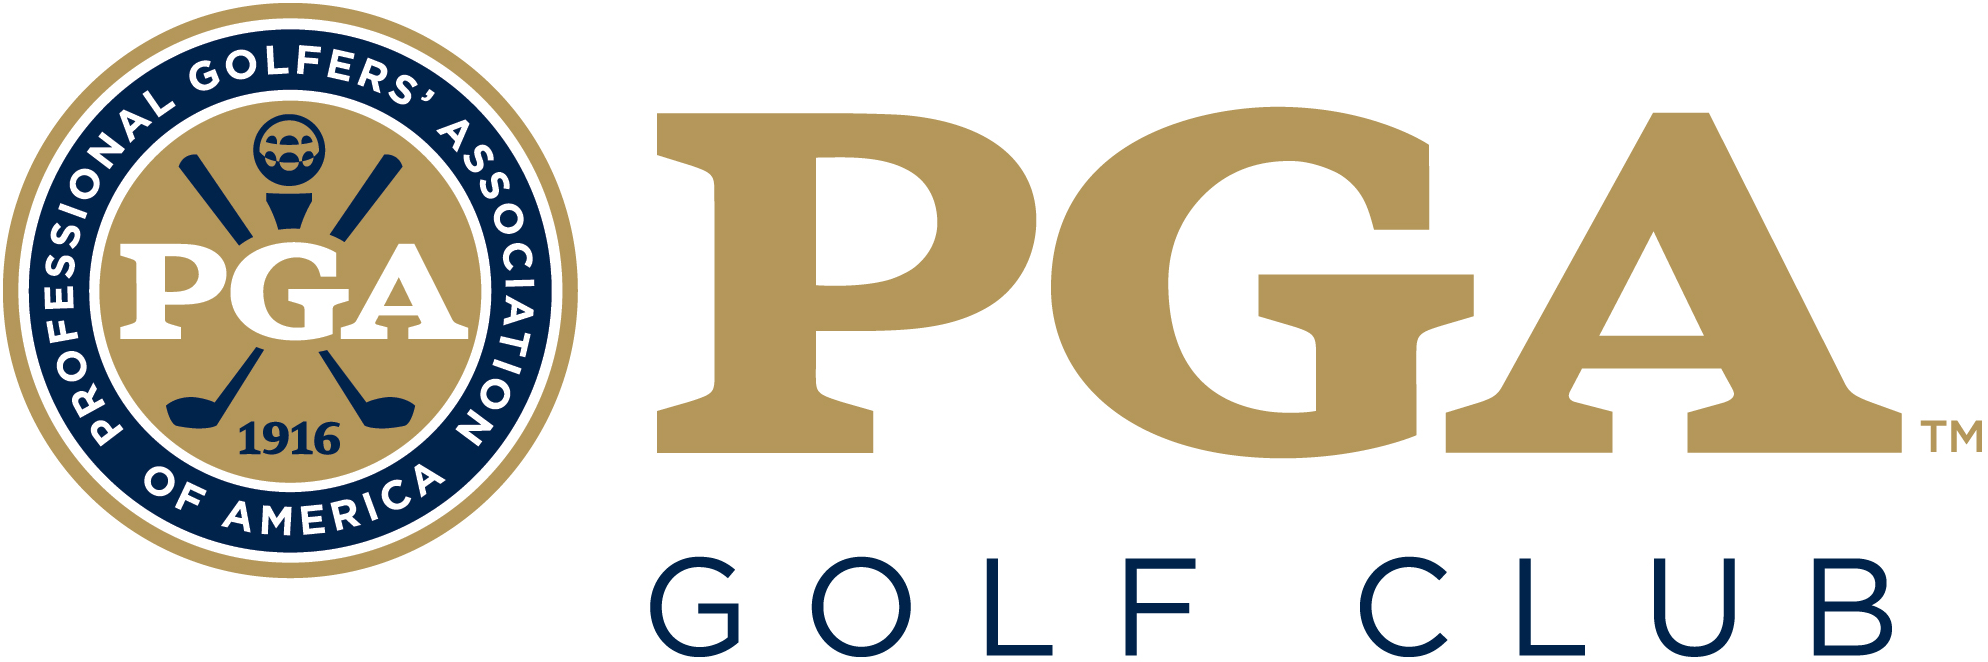 Events Archive - PGA | Center for Golf Learning & Performance